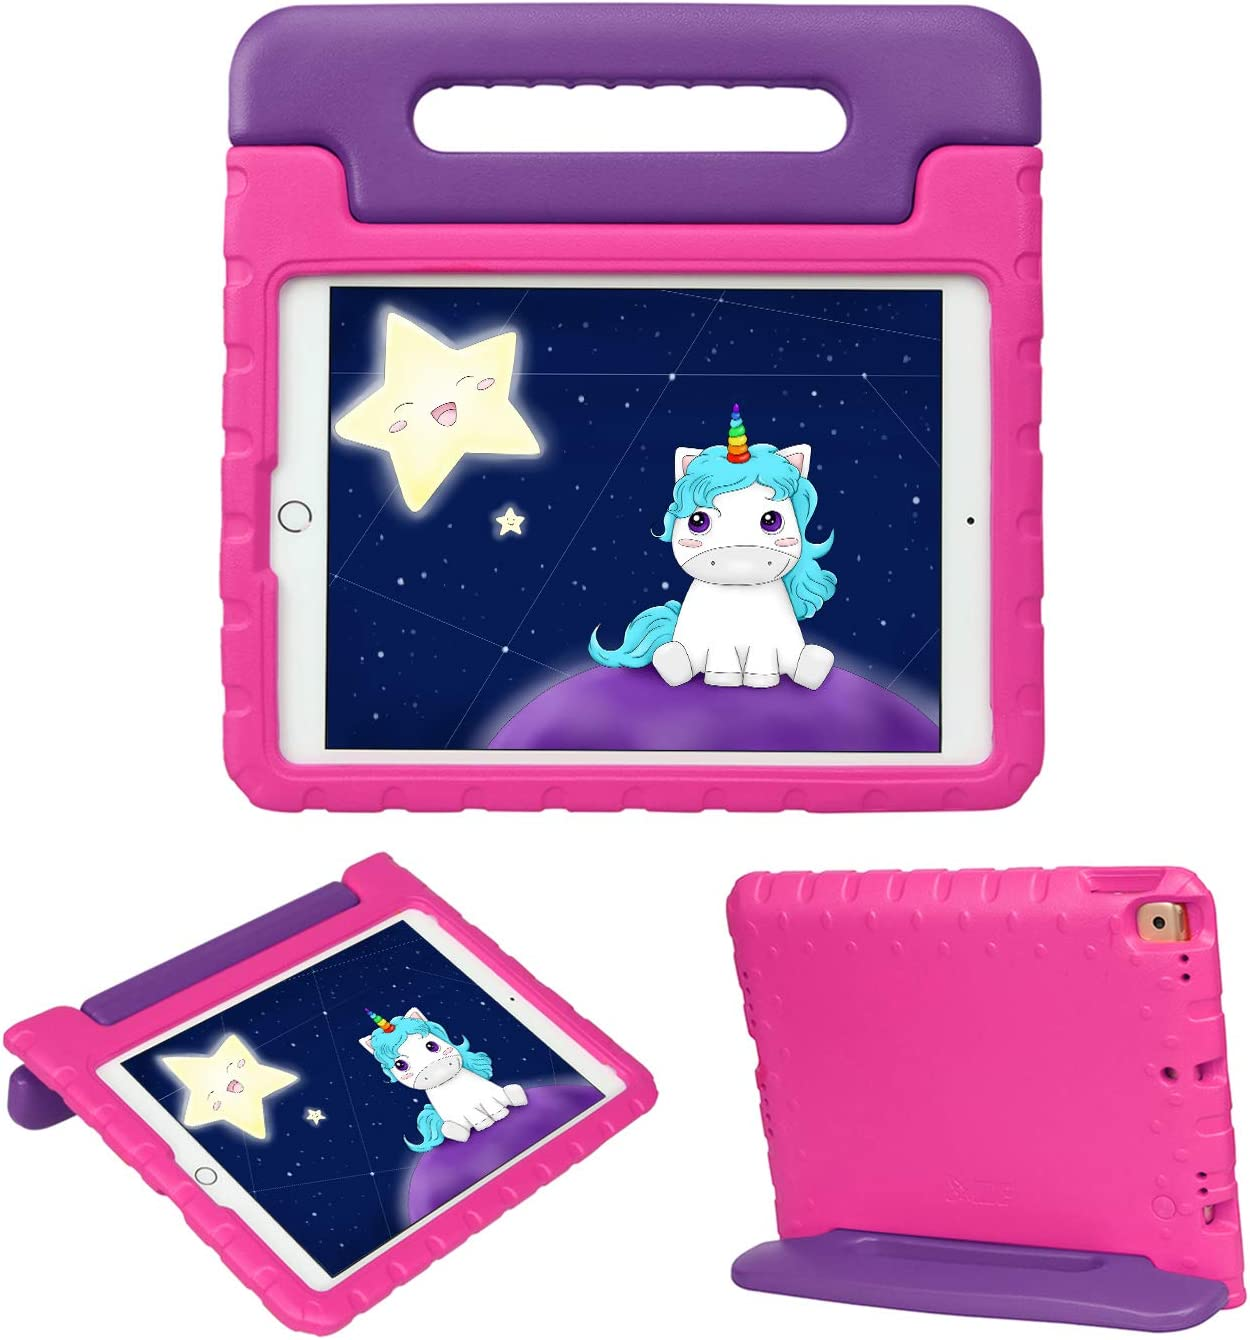 HDE iPad 8th Generation Case for Kids – Shock Proof iPad Cover 7th Generation 10.2 - iPad 10.2 Kids Case with Handle Stand for 7th/8th Generation Apple iPad - Purple Pink